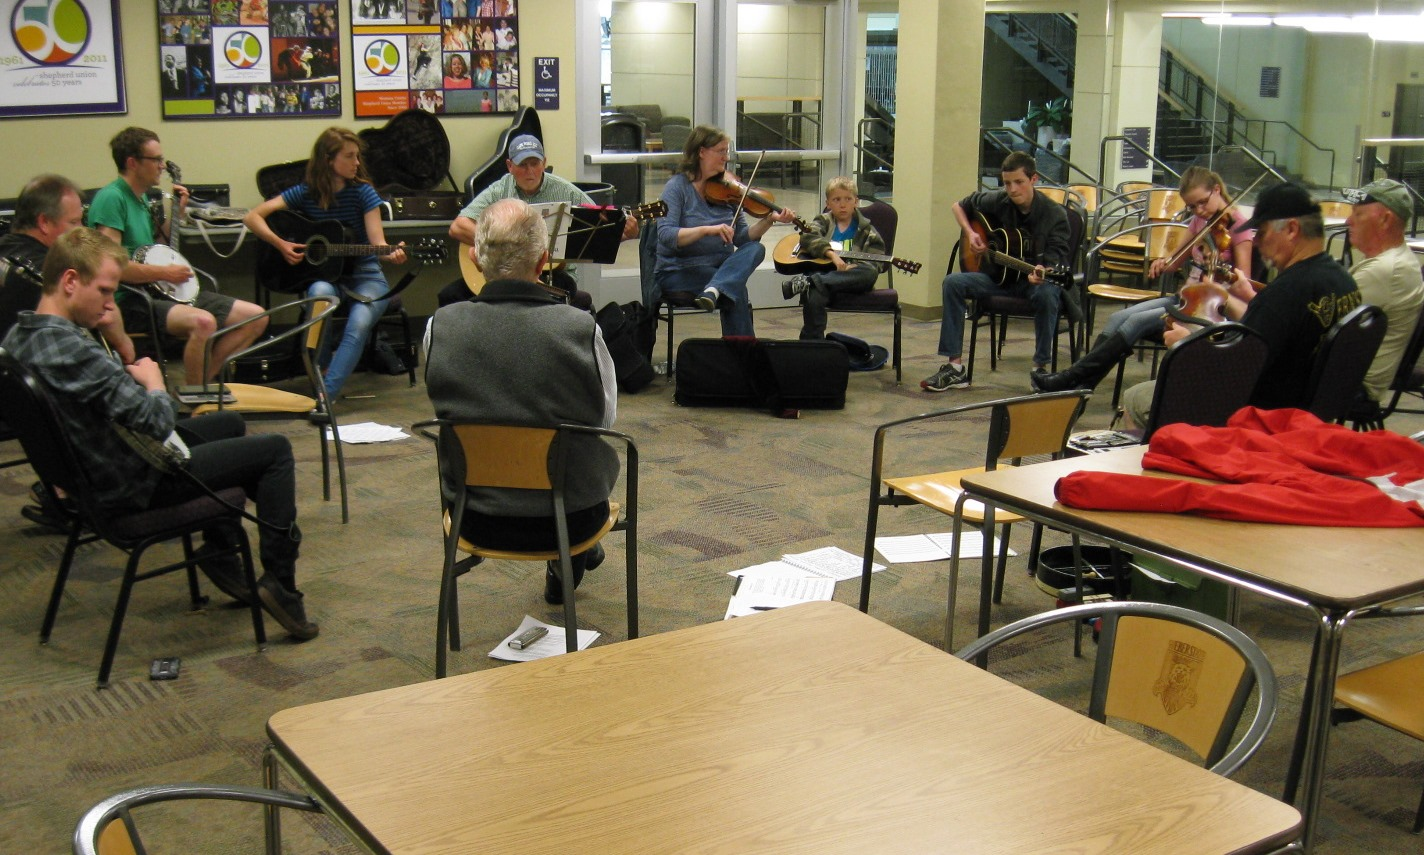 UOTF Pioneer chapter Jam in WSU Lair room, 07 May 2016  IMG_9896